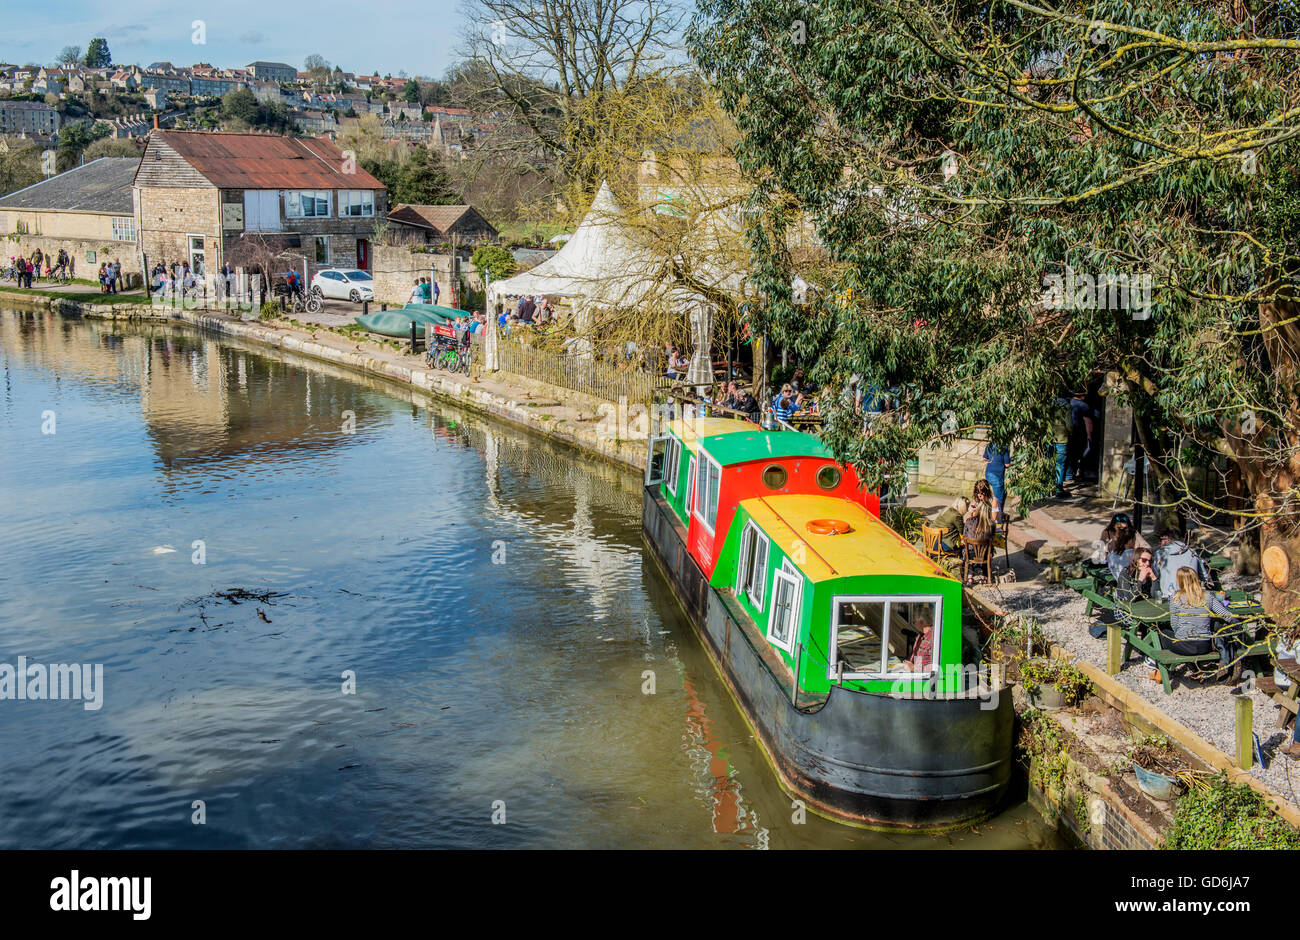 The Kennet and Avon Canal in Bradford on Avon, Wiltshire, showing the canal towpath, people out walking and a moored - Stock Image